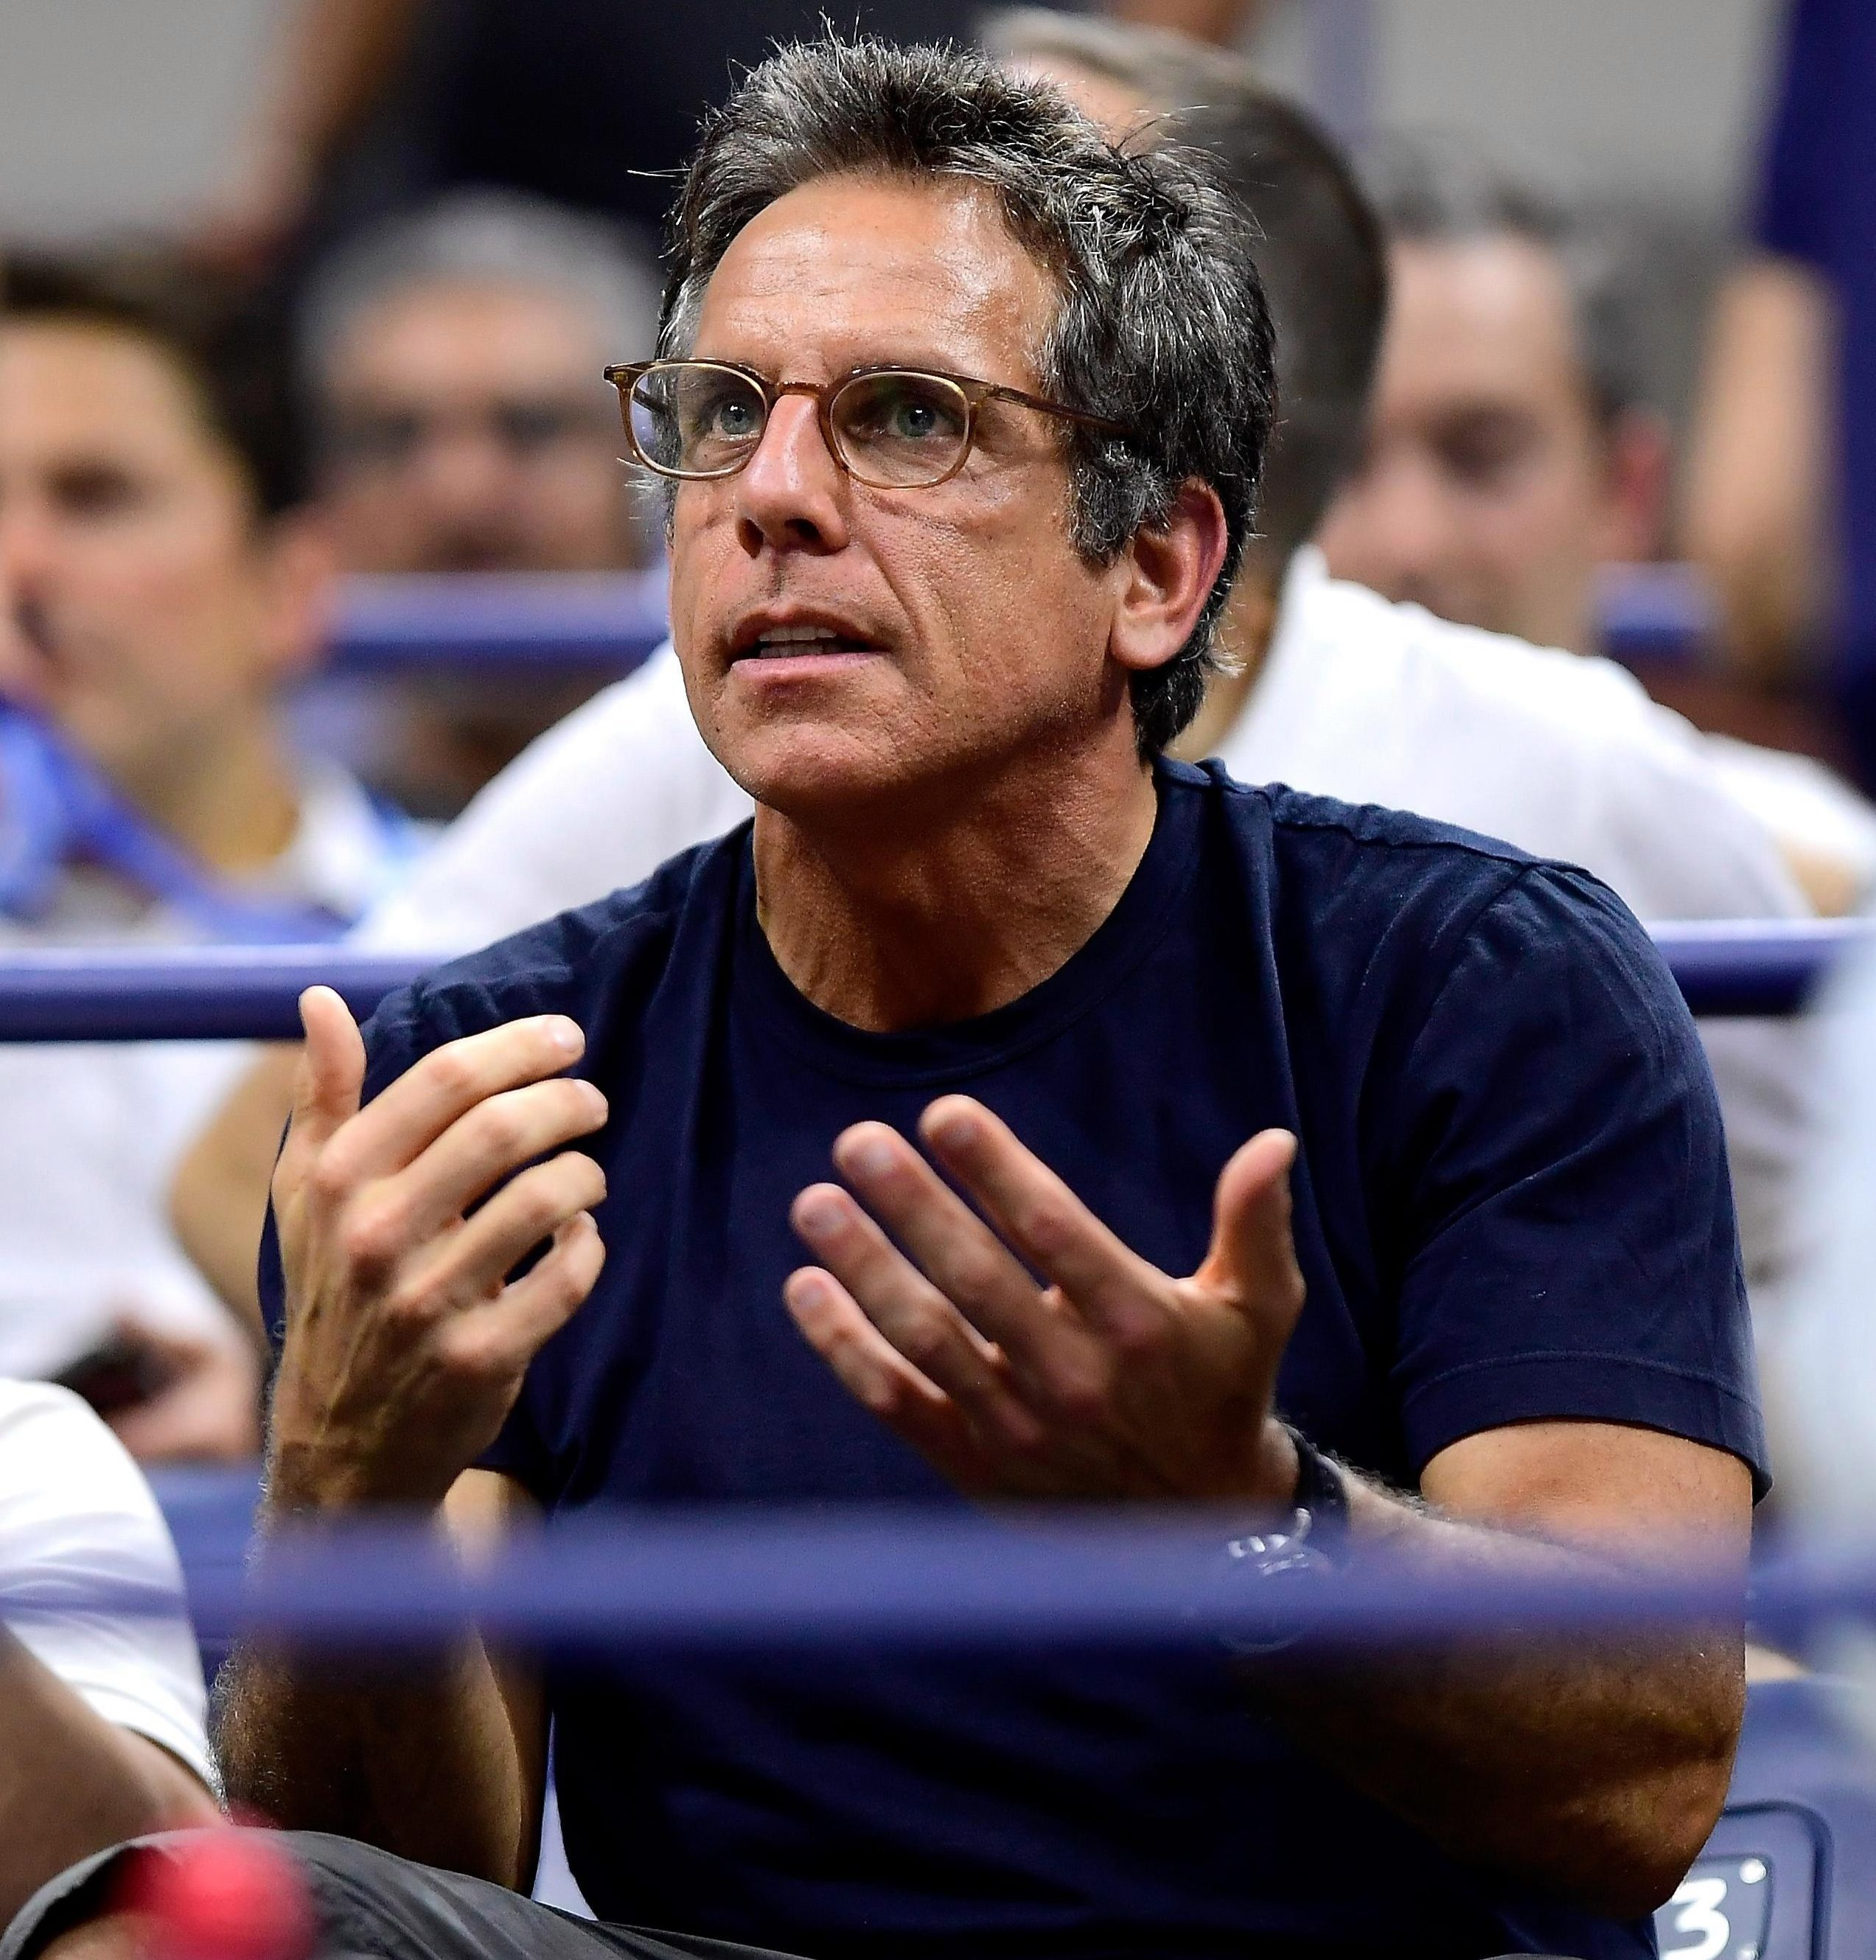 Ben Stiller seemed to be enjoying what was happening on court at the US Open